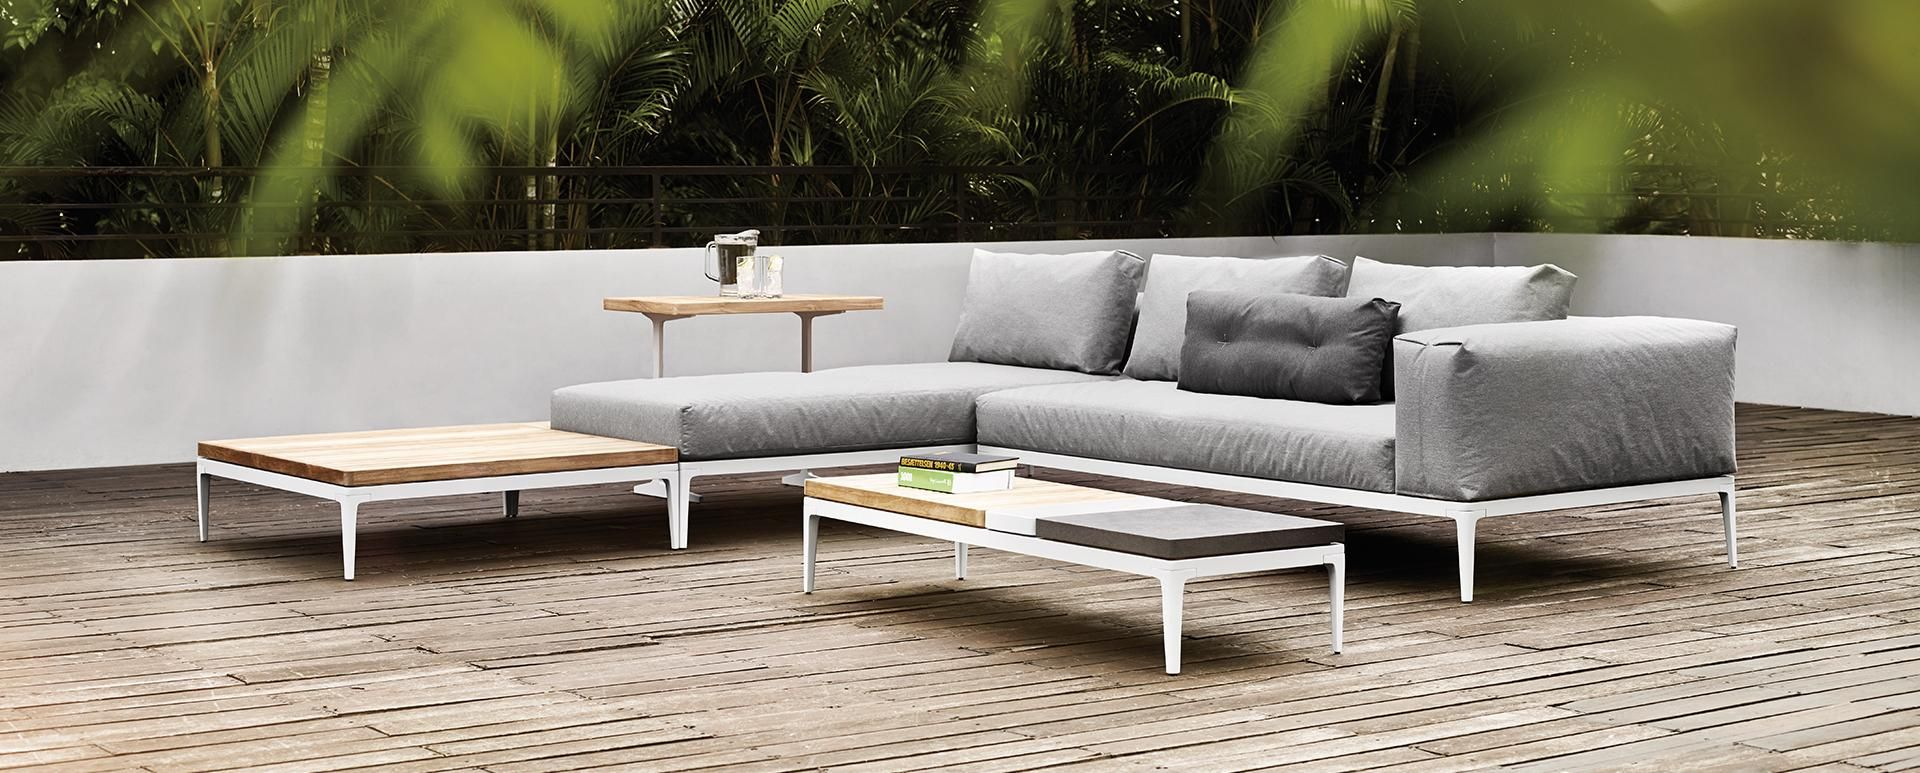 Outdoor Lounge Furniture Grid Gloster Furniture Outdoor Lounge Lounge Lounge Mobel